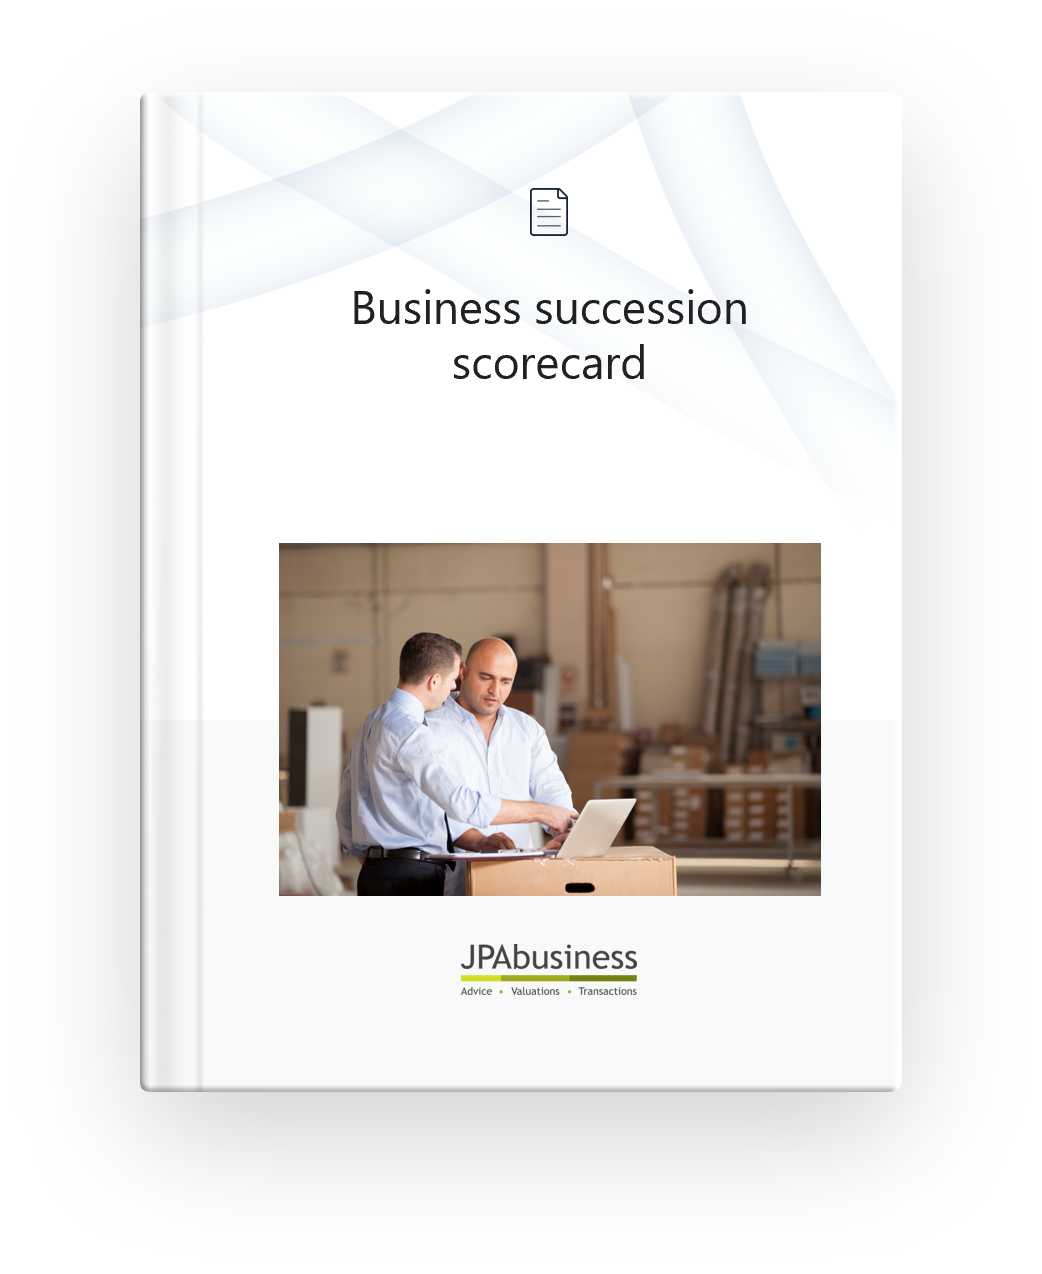 Business Succession Scorecard | JPAbusiness